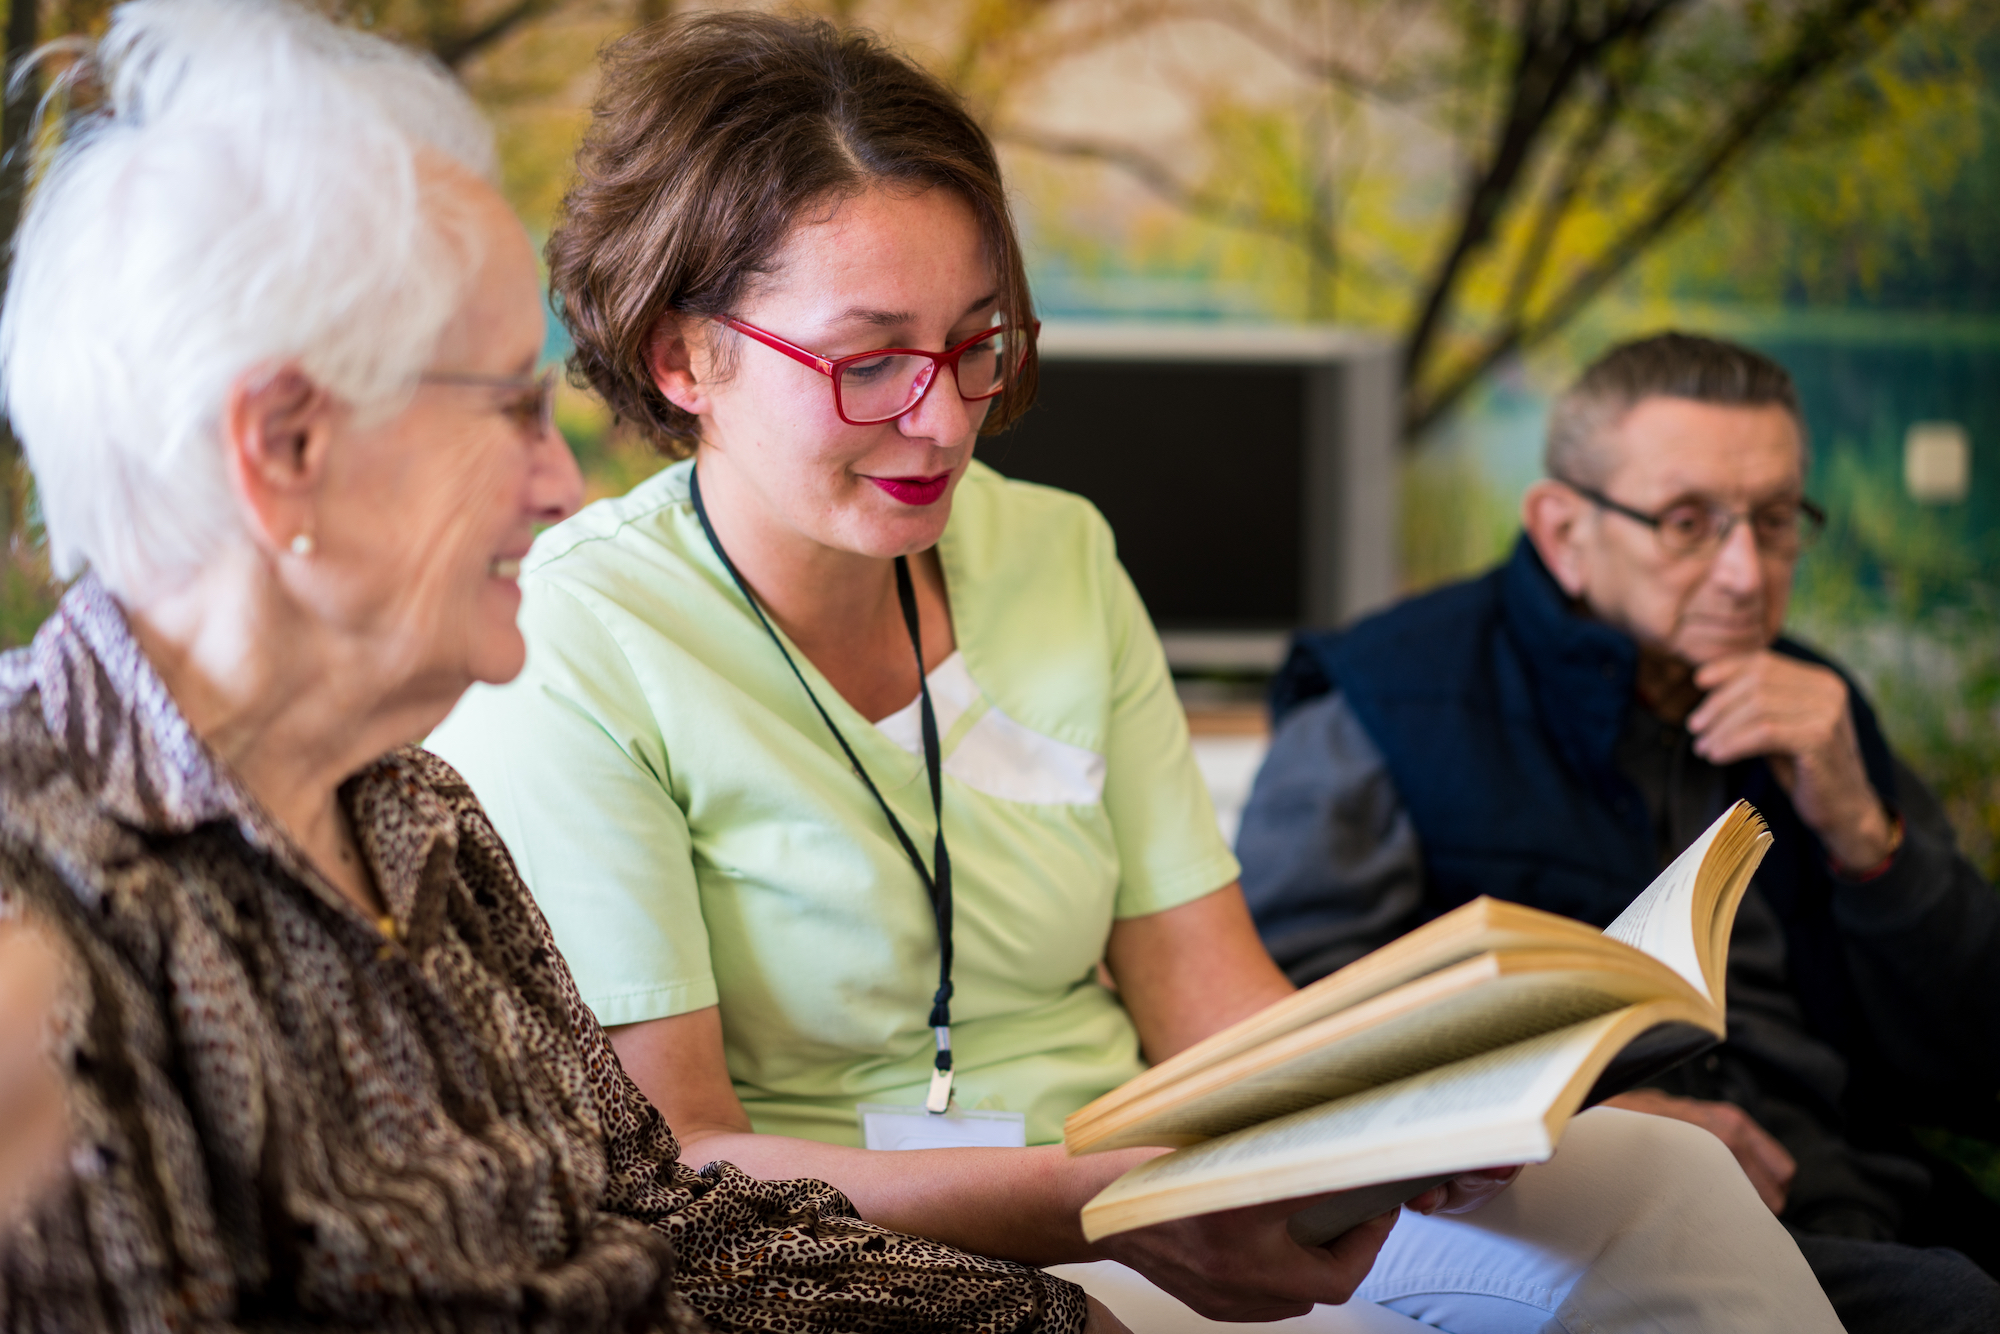 Volunteer reading a book to a group of older people